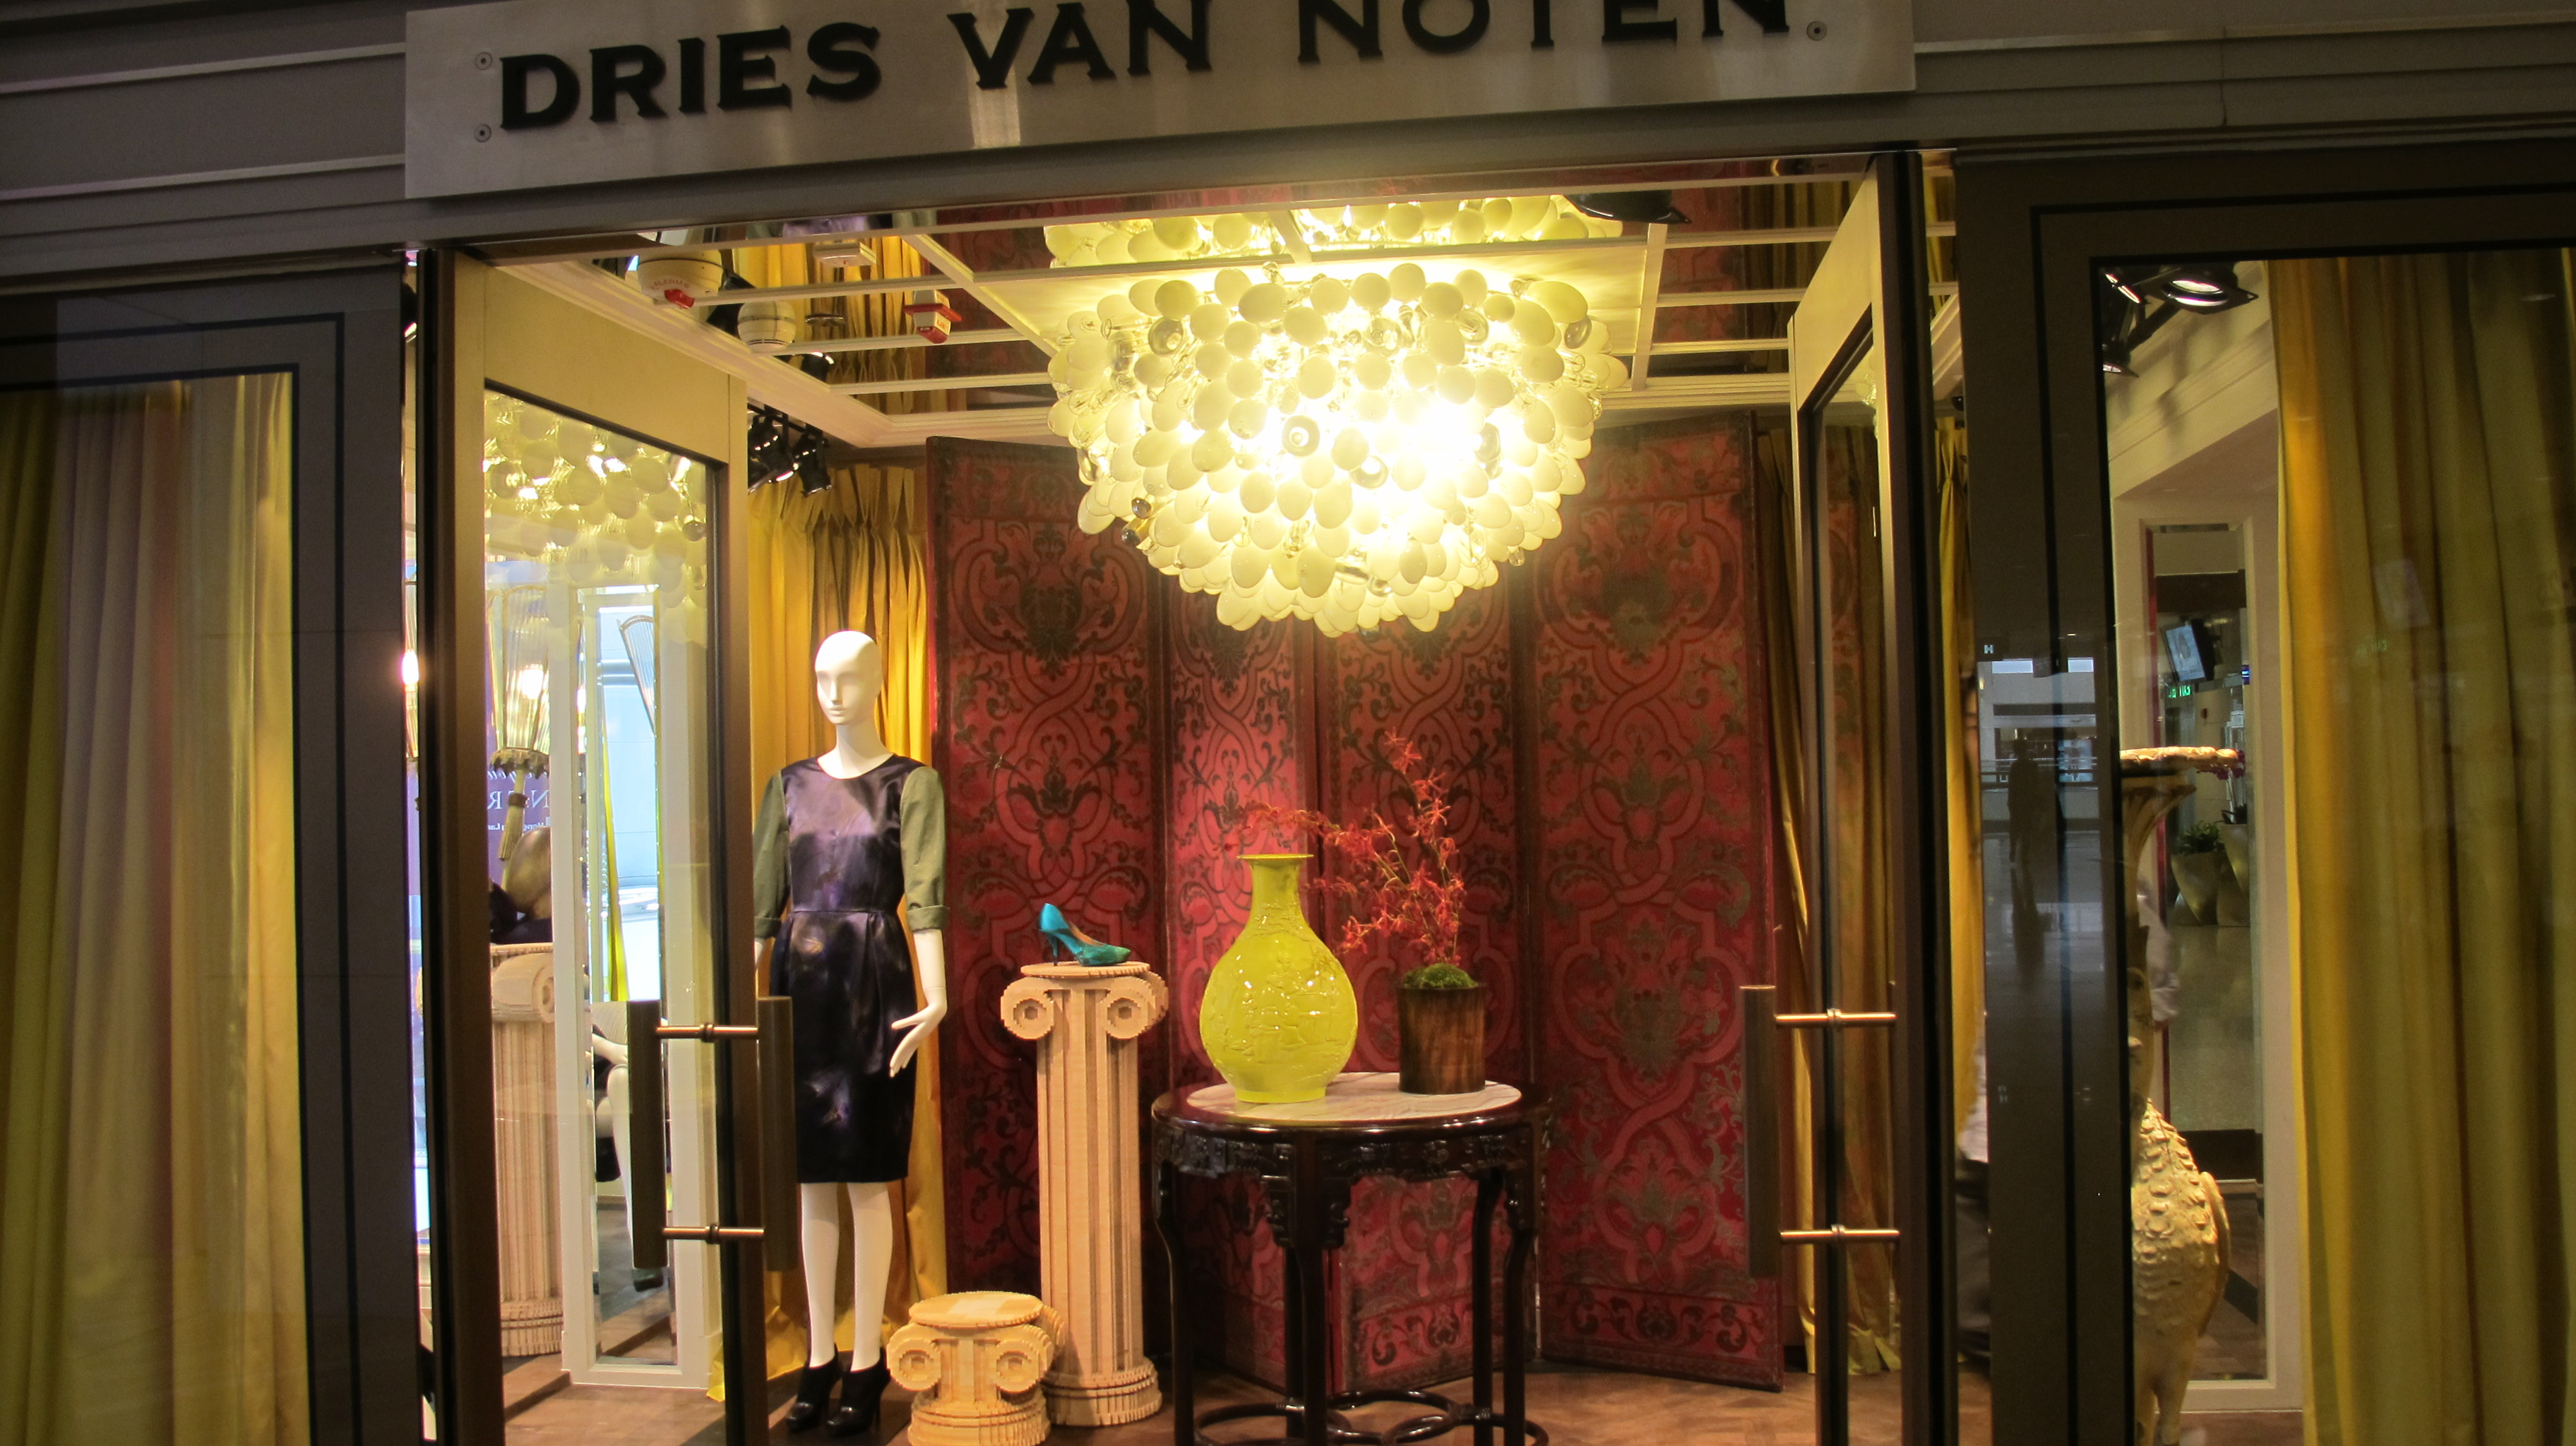 dries van noten shop